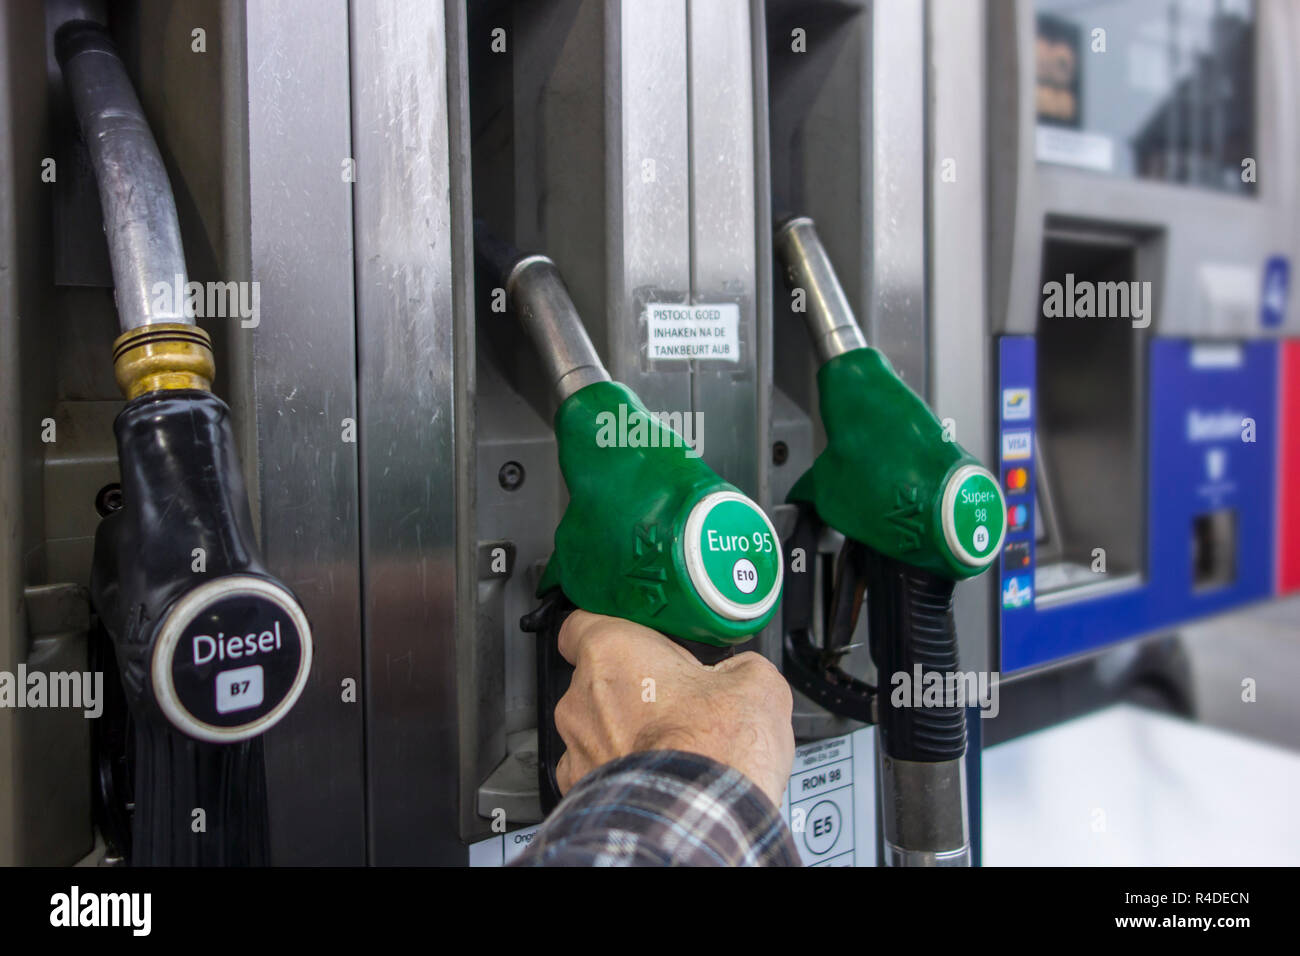 Man selecting petrol fuel pump nozzle at gas station for refueling his car in Europe Stock Photo